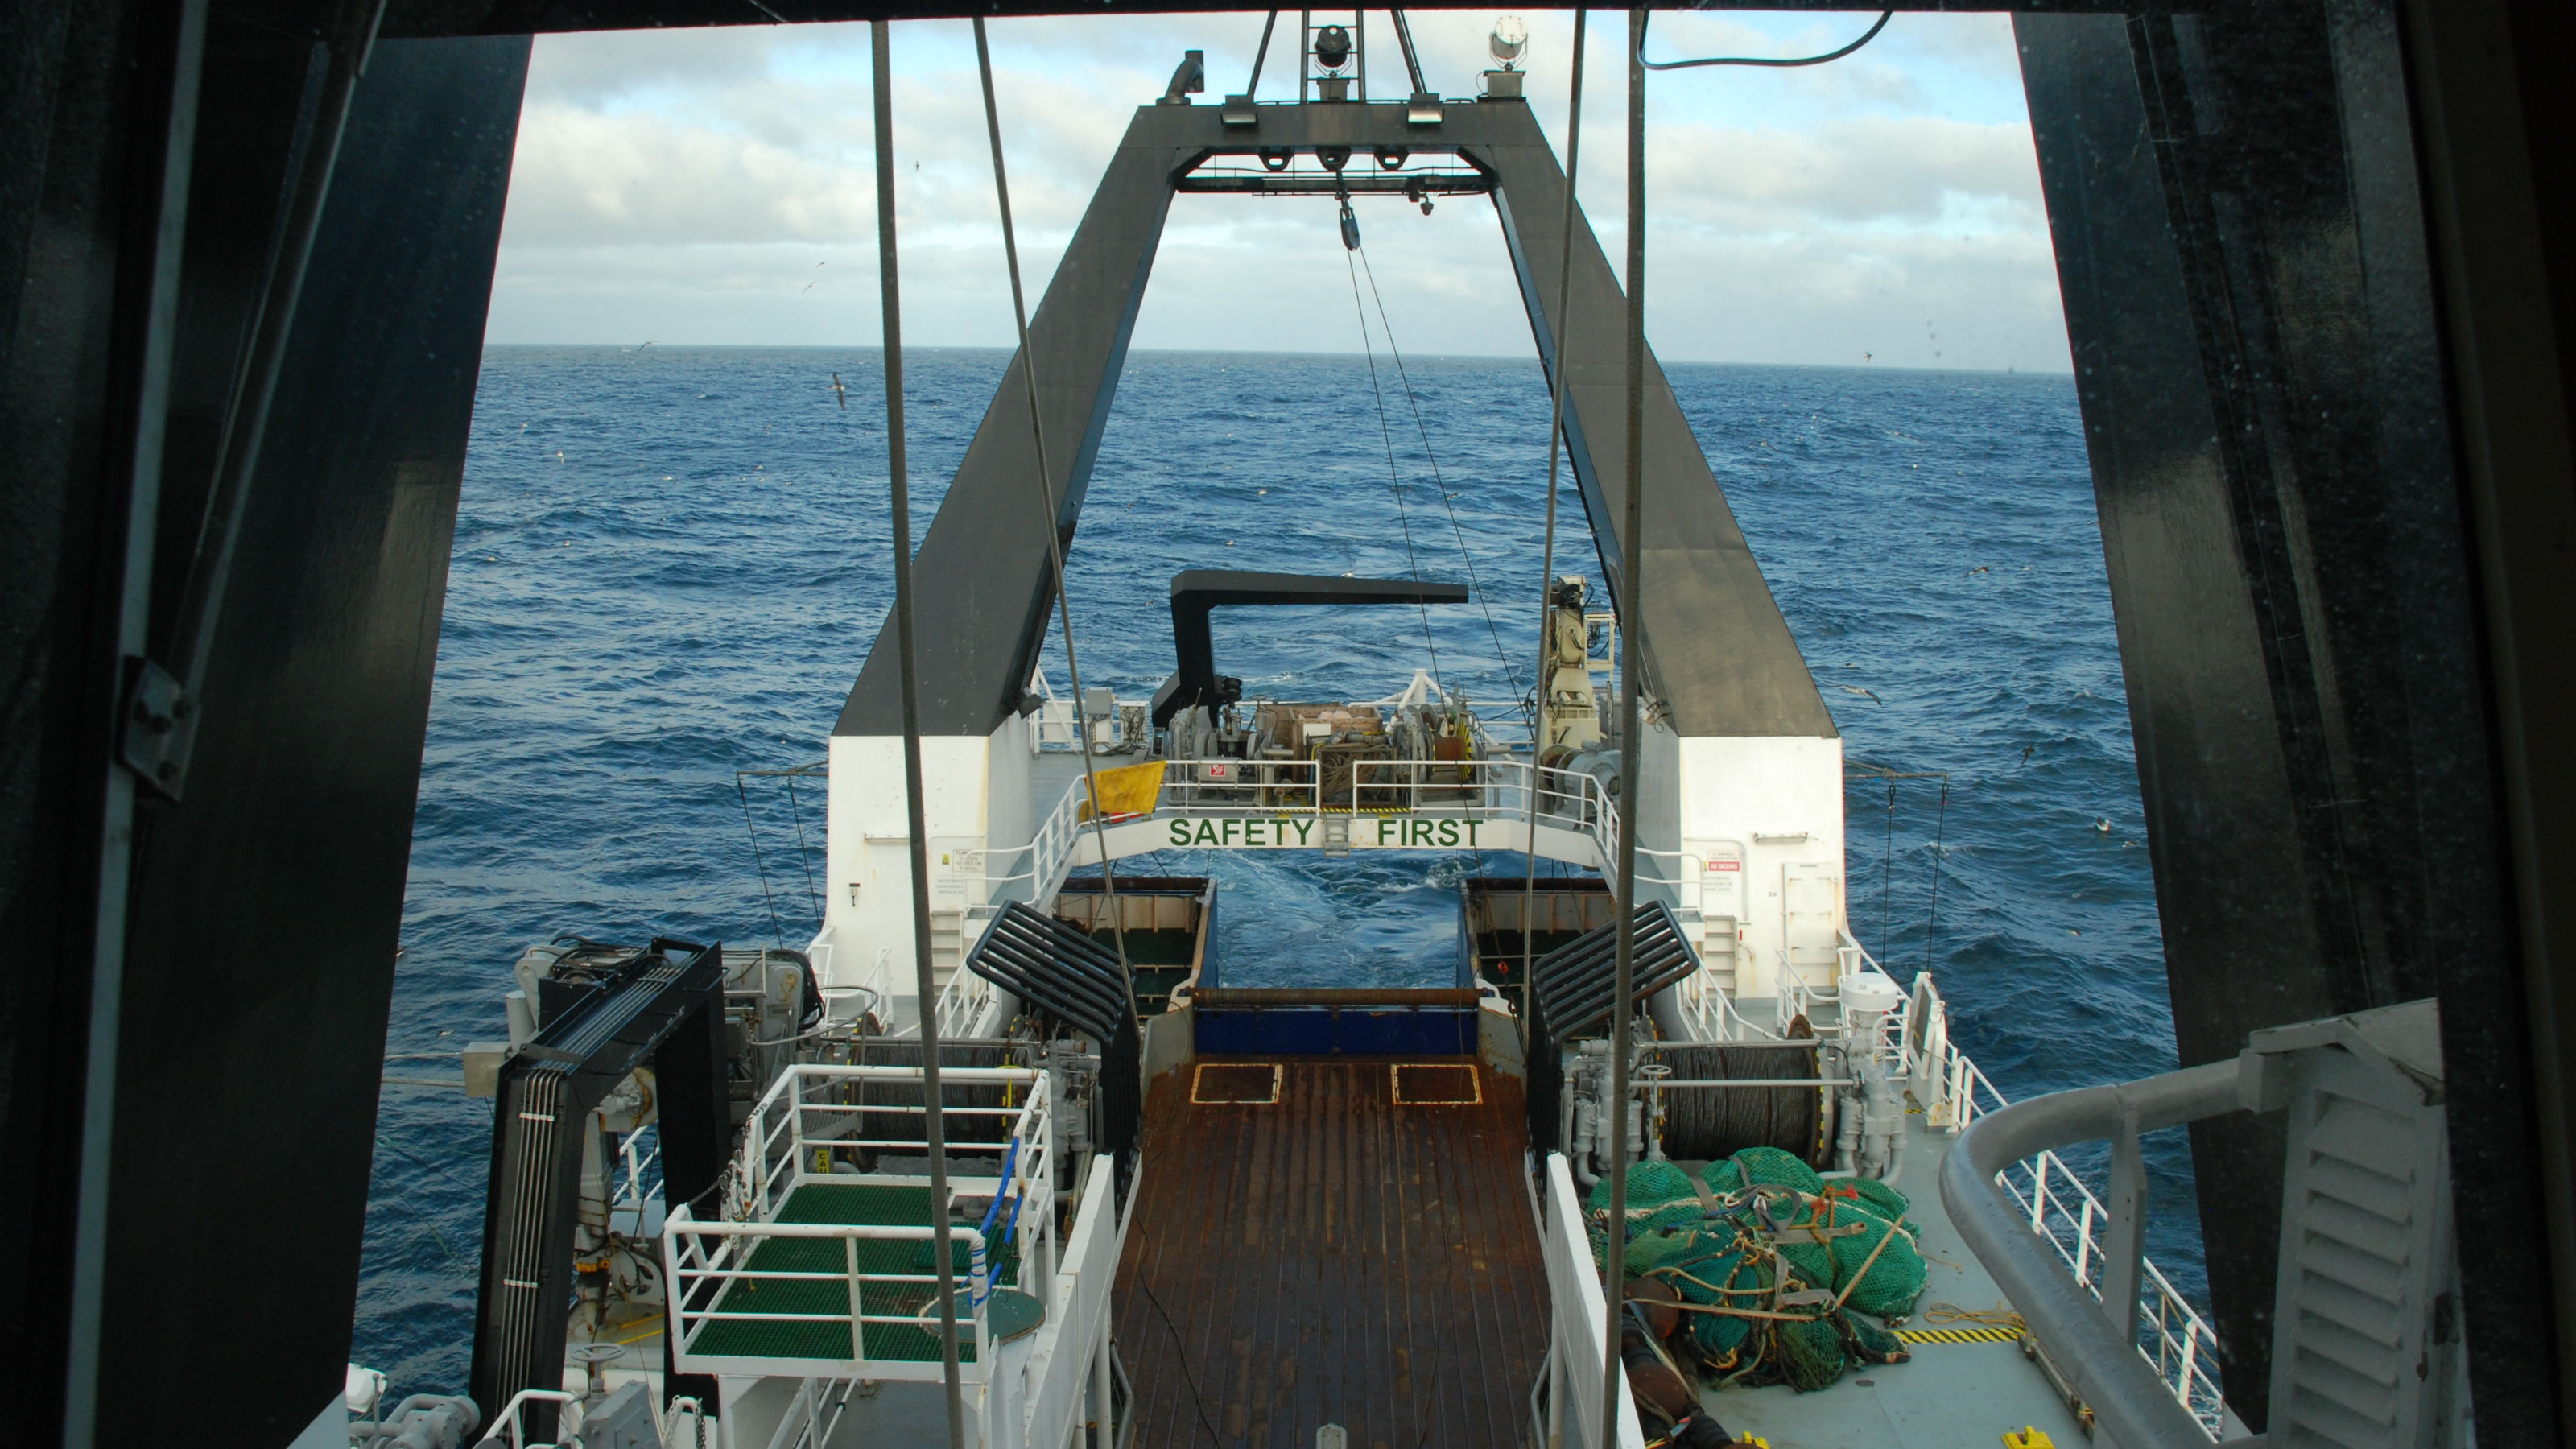 View from the captain's deck of the Tangaroa on the Chatham Rise.